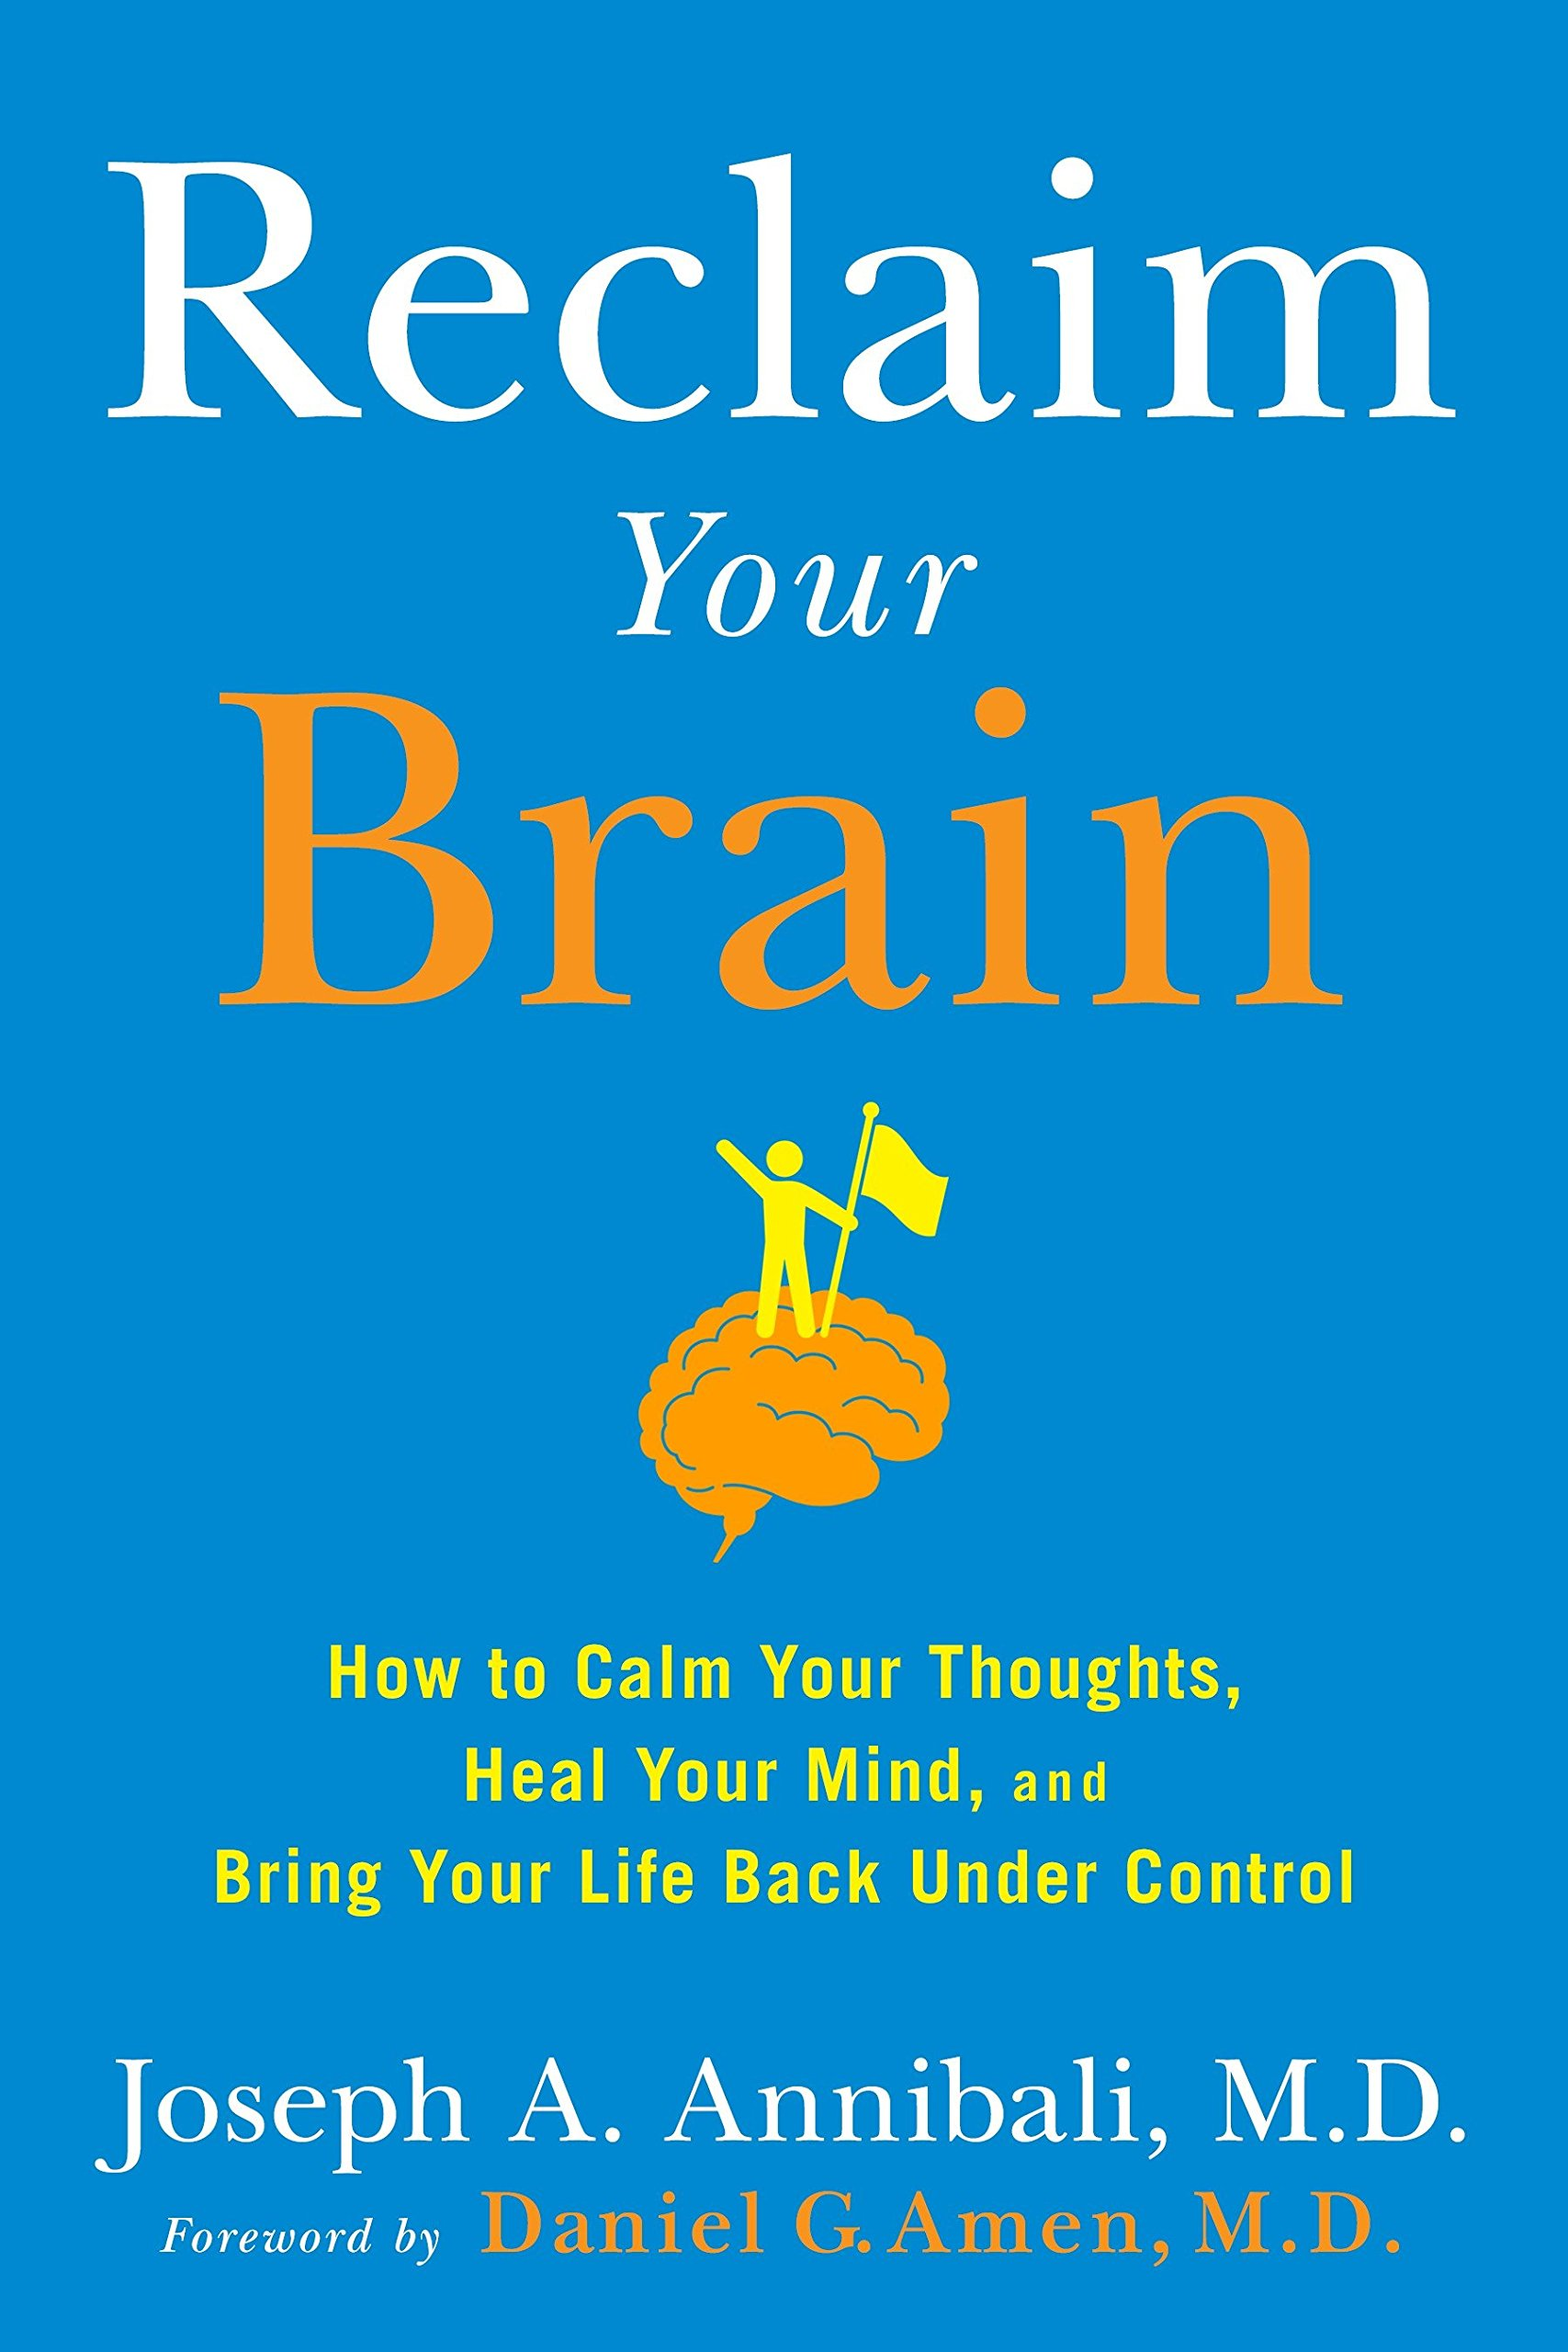 Download Reclaim Your Brain: How to Calm Your Thoughts, Heal Your Mind, and Bring Your Life Back Under Control PDF